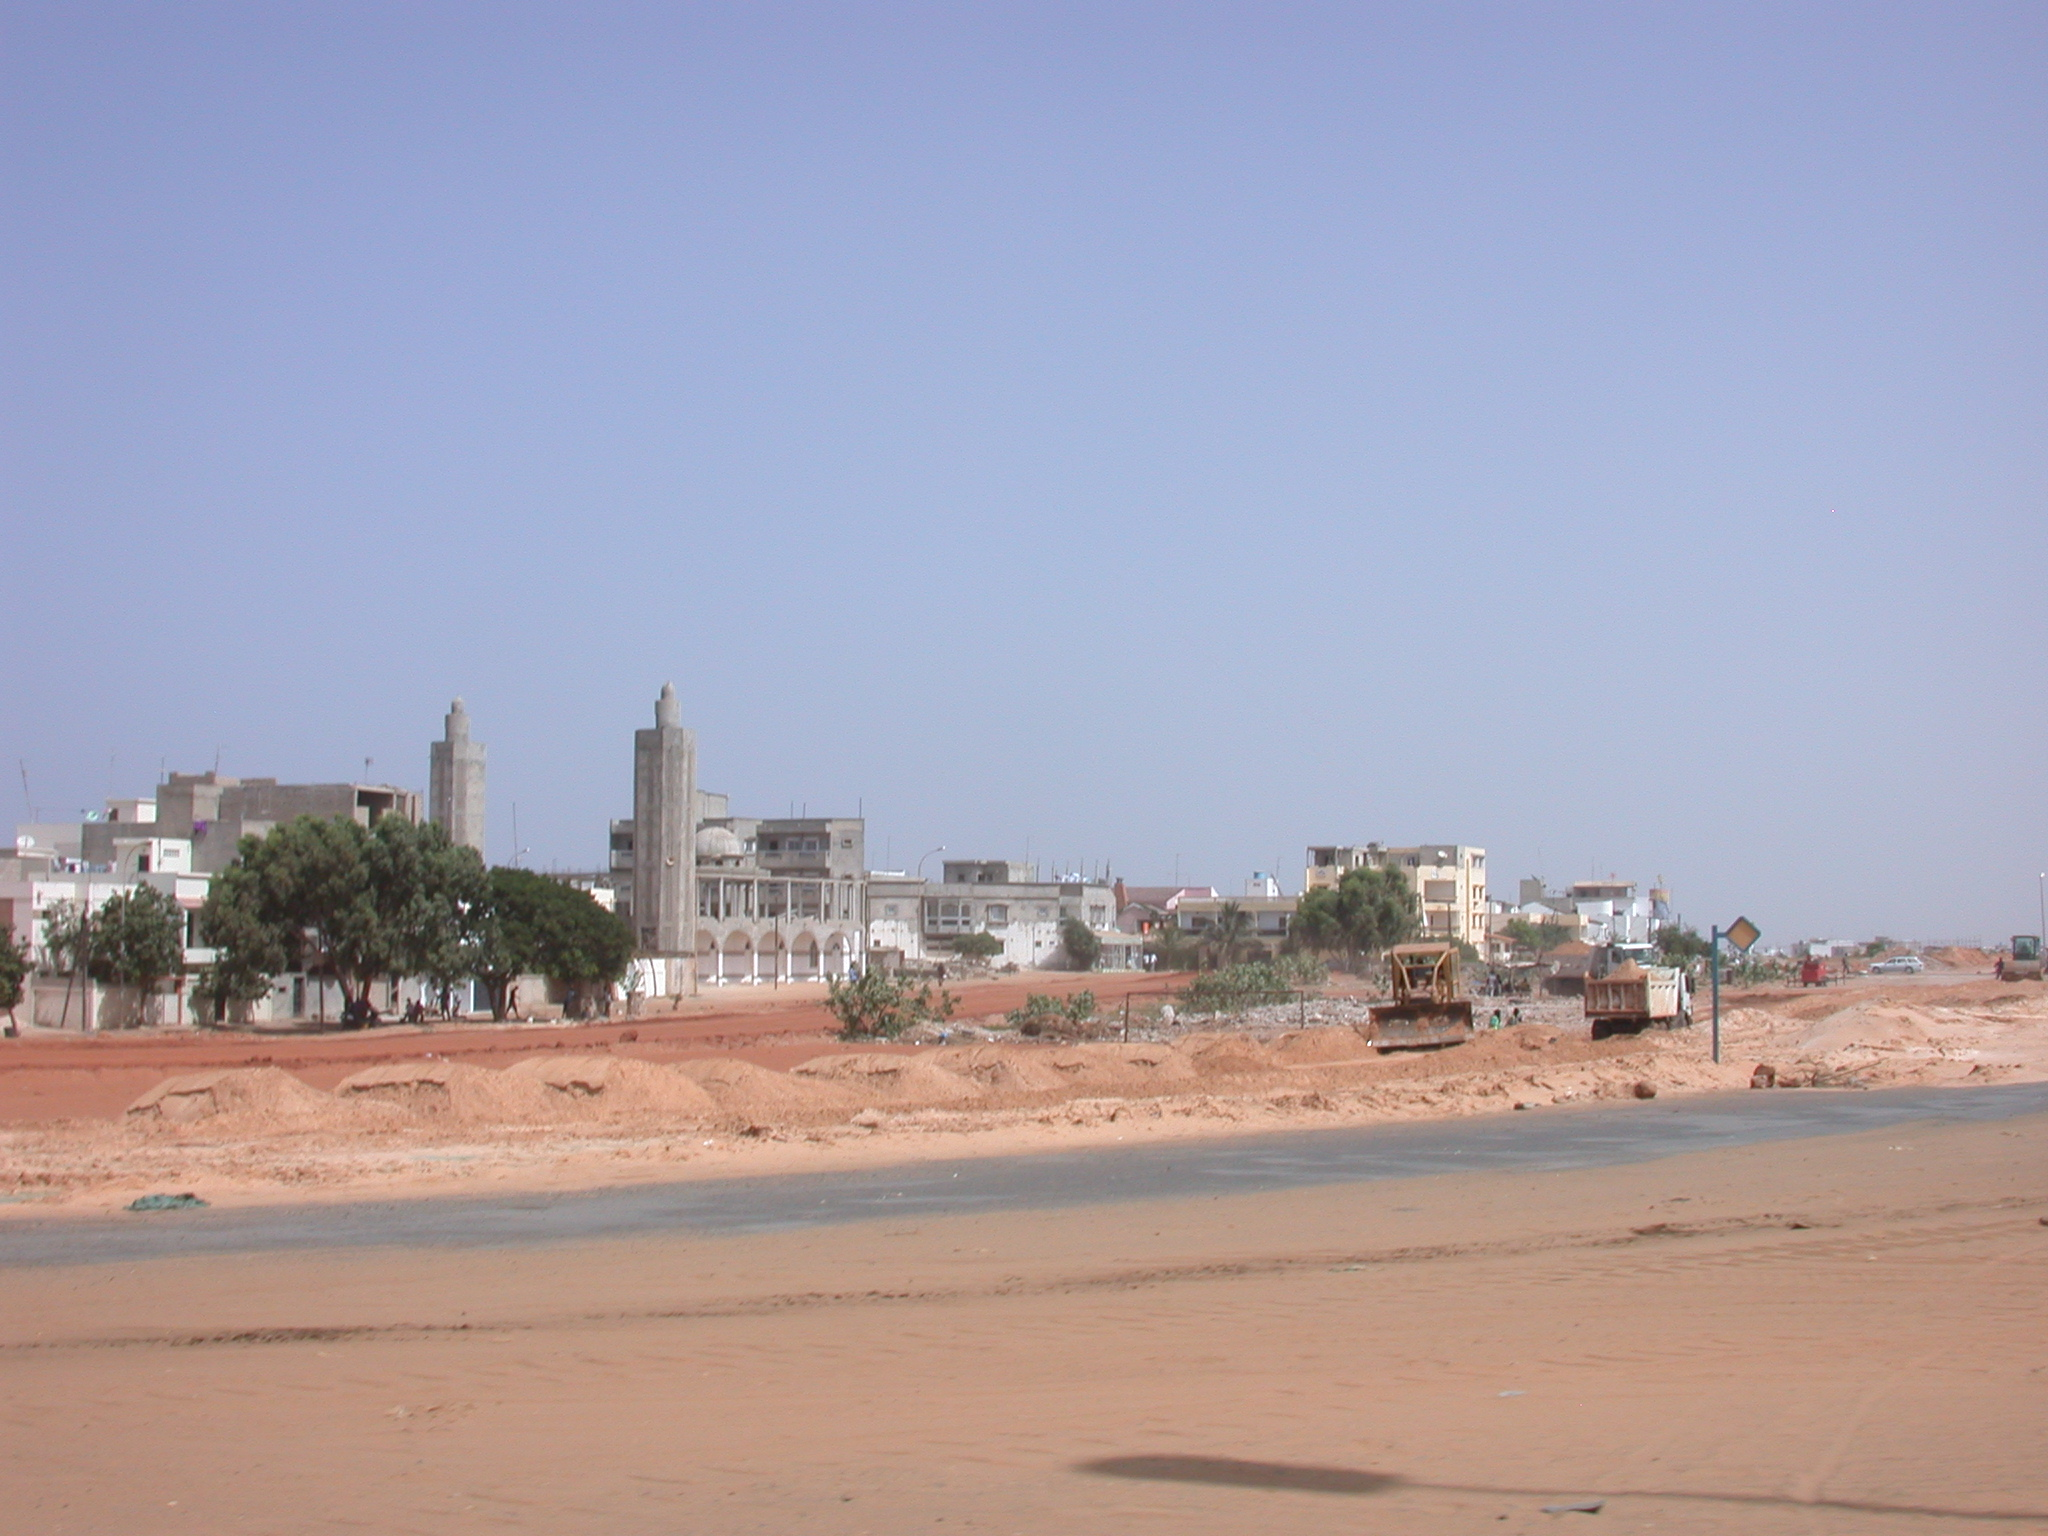 Terrain on Route to Airport, Dakar, Senegal